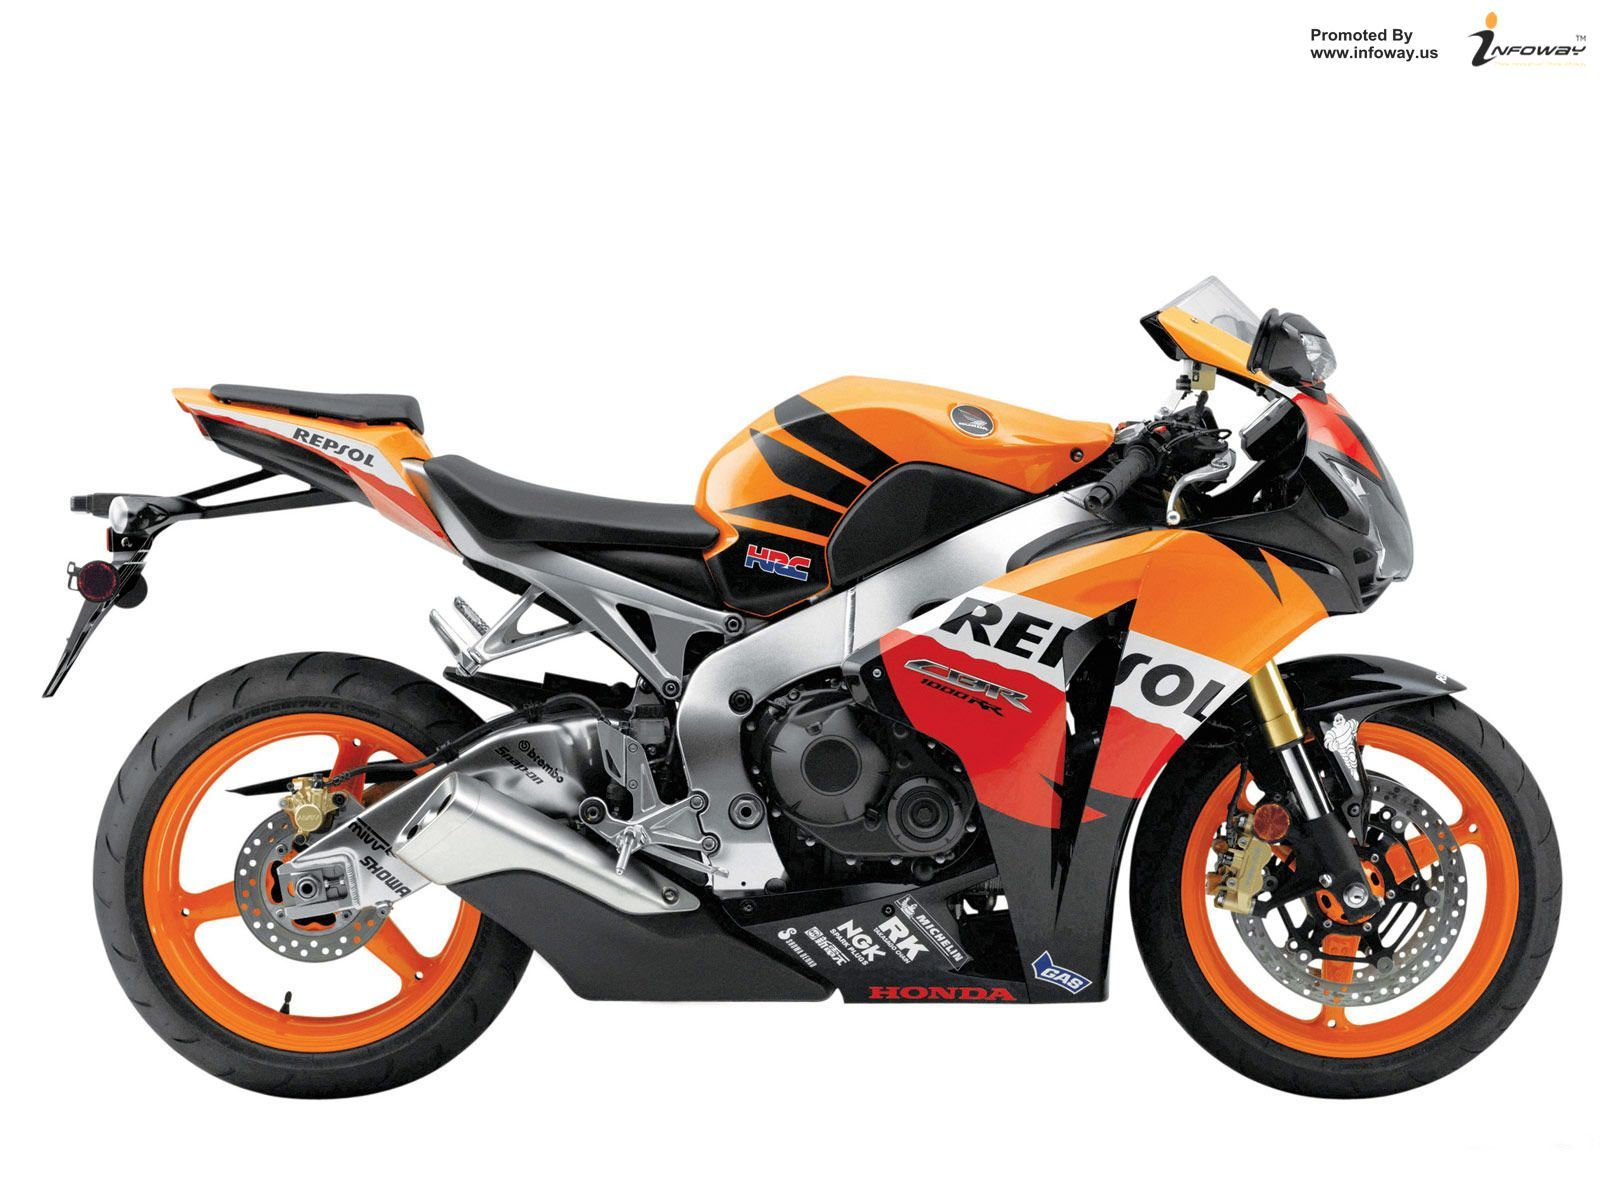 Honda Repsol Wallpaper Motorcycle: Honda Repsol 2009 Motorcycle